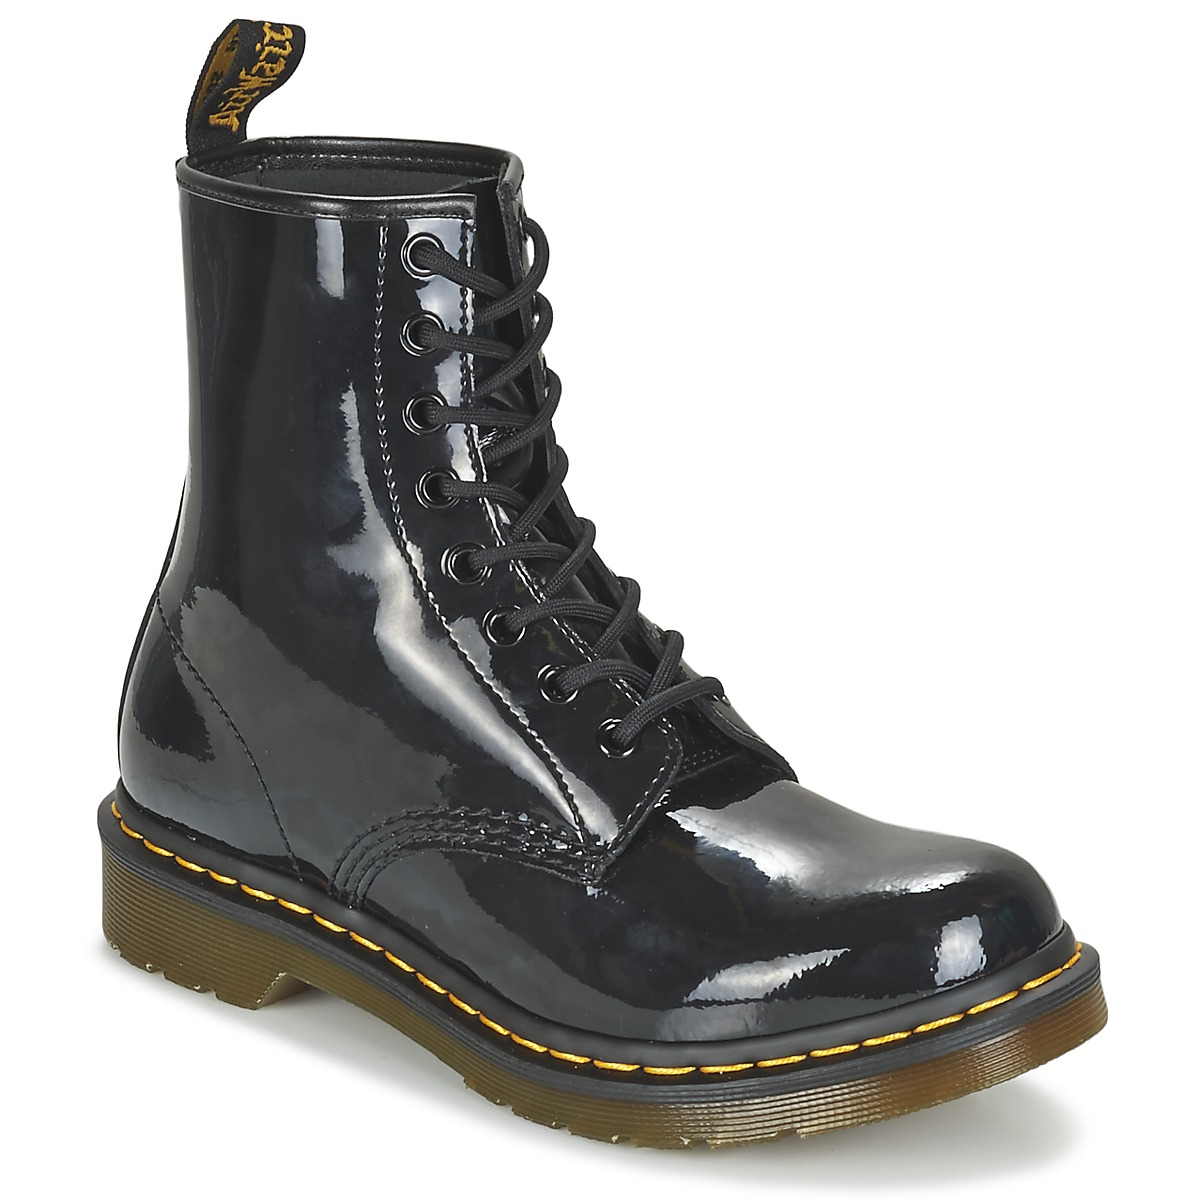 Dr Martens 1460 8 EYE BOOT Black Patent